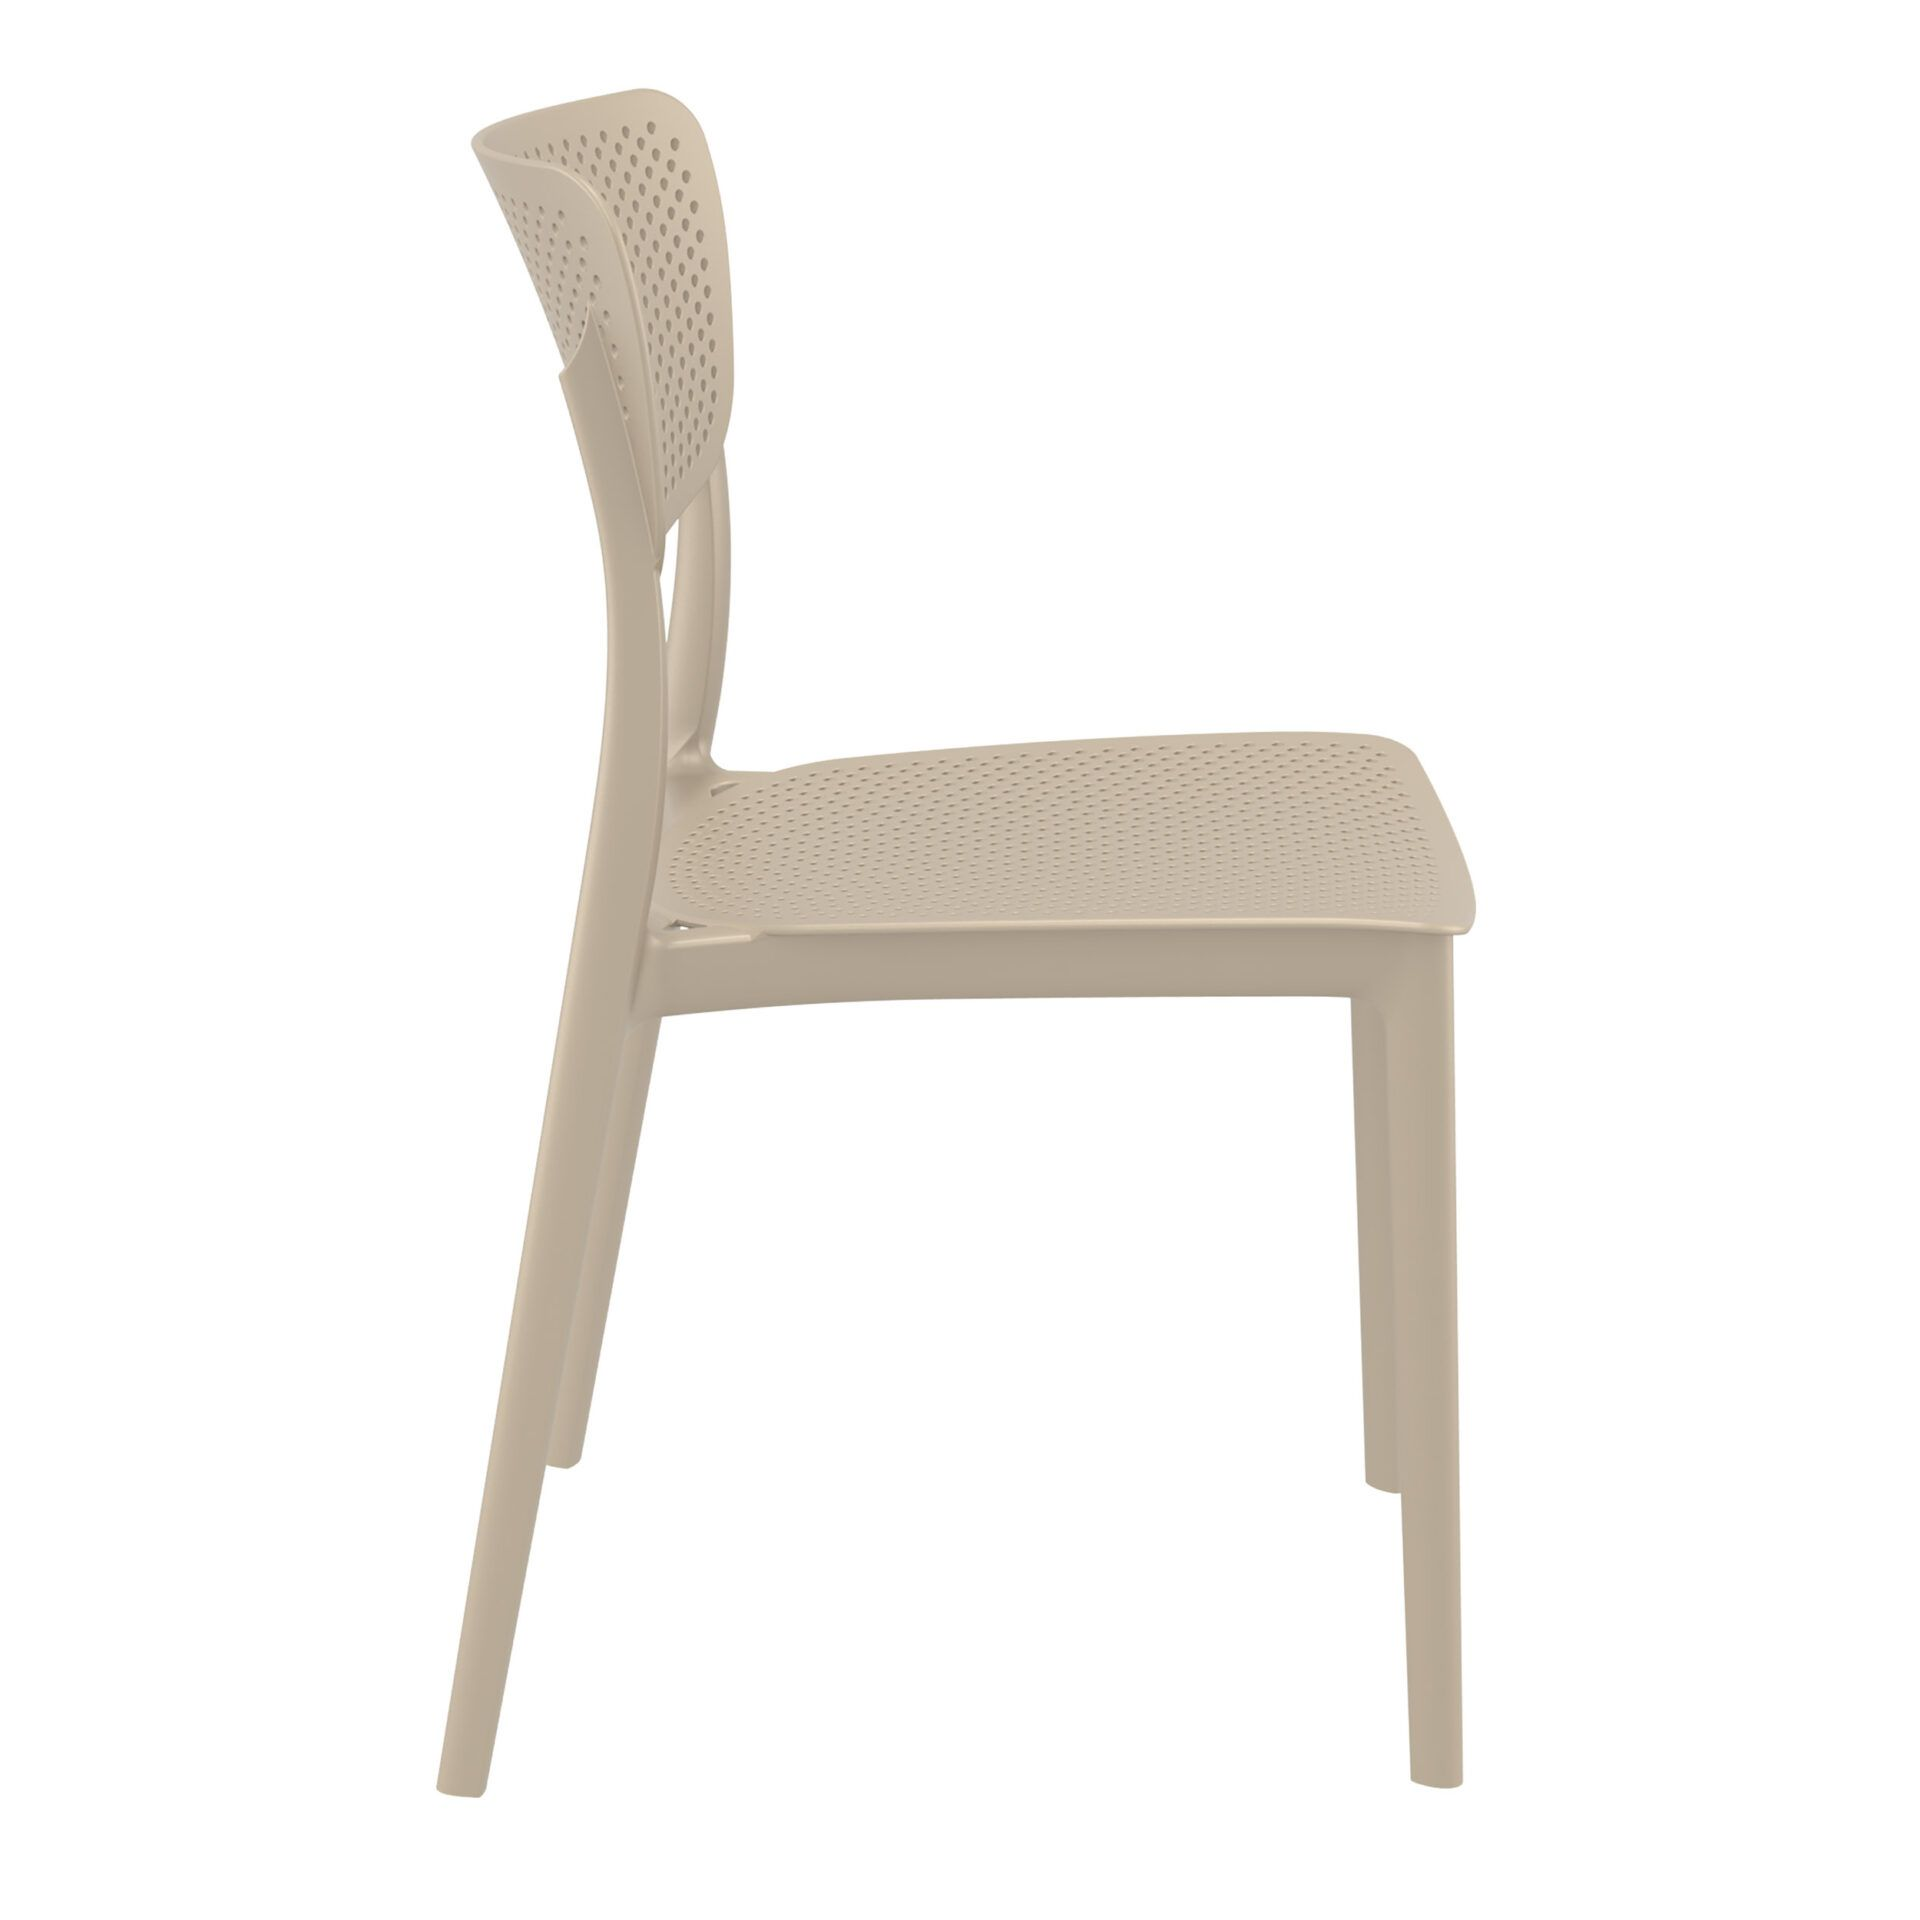 polypropylene hospitality seating lucy chair taupe side